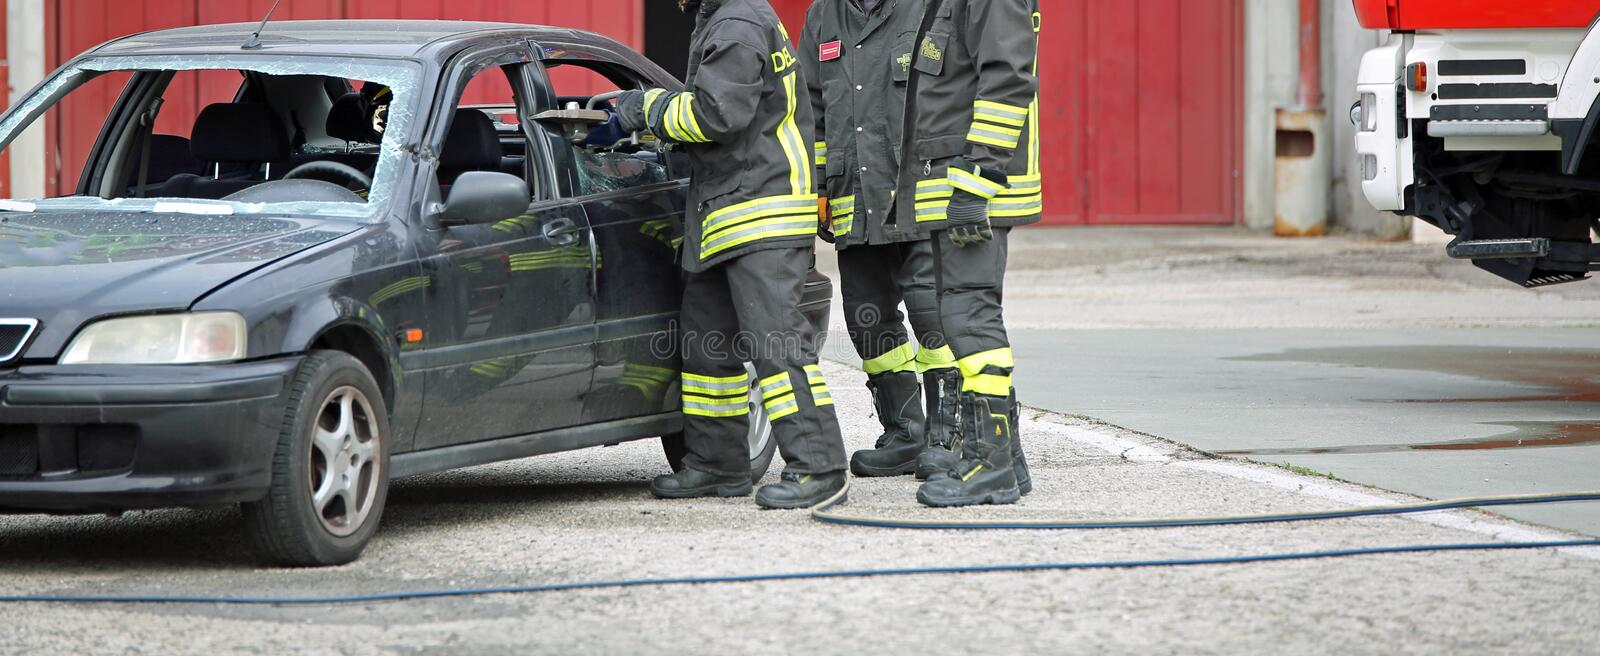 Italy - May 10, 2018: Italian firefighters use the shears to cut. Italy - May 10, 2018: Italian firemen use the shears to free the injured on the car after the stock photo